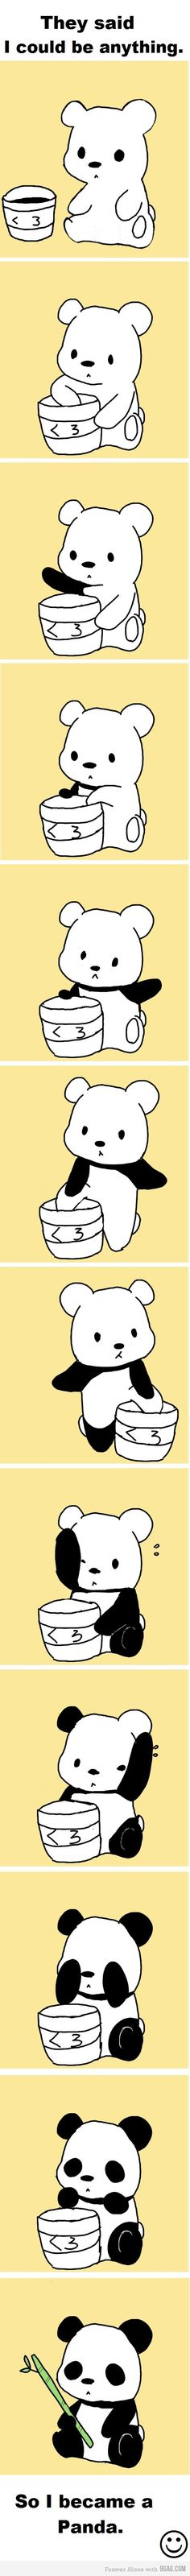 how to be a panda~